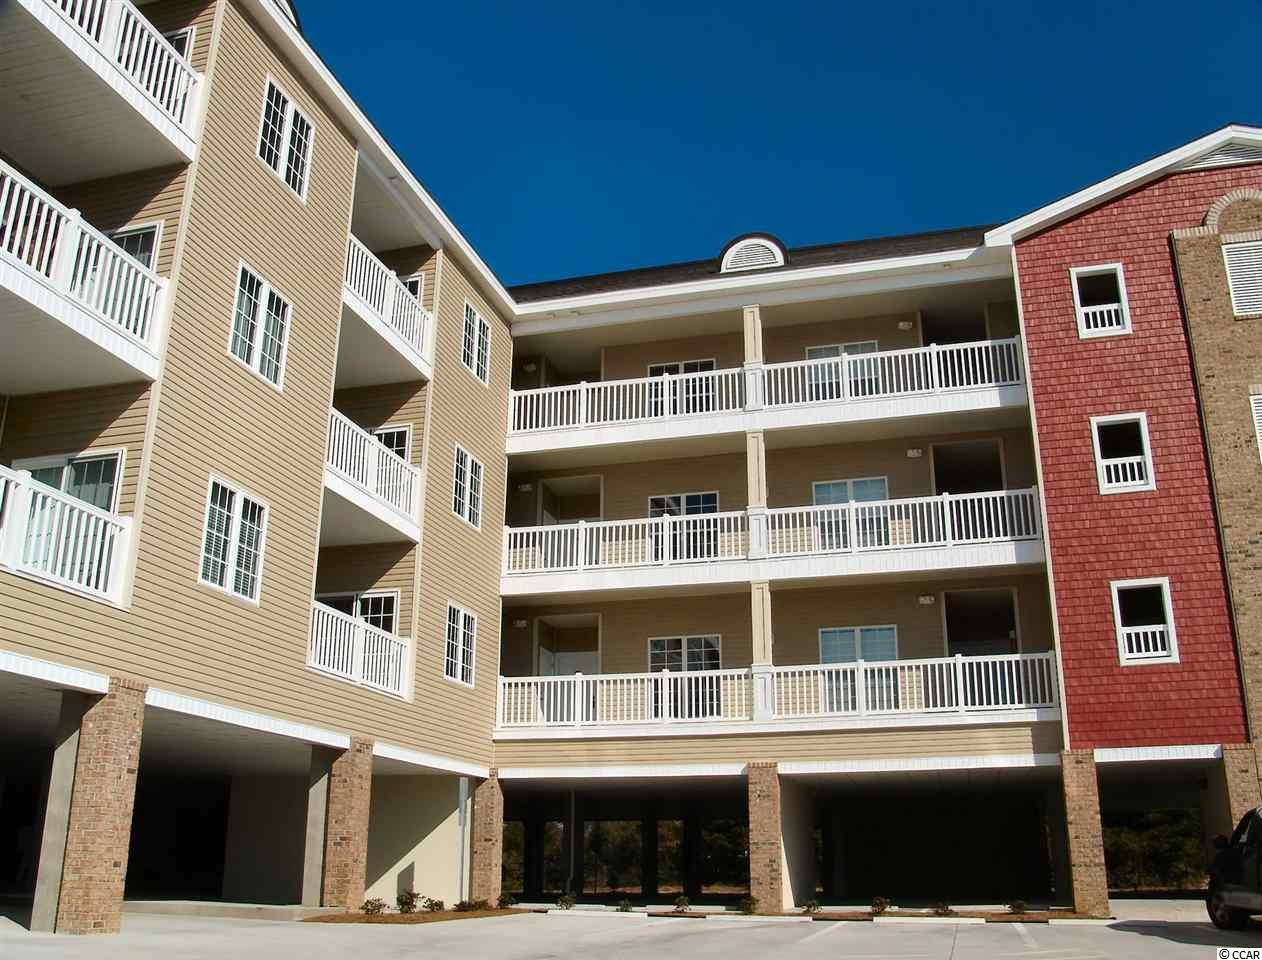 This 3 bedroom condo at  Kings Grant is currently for sale